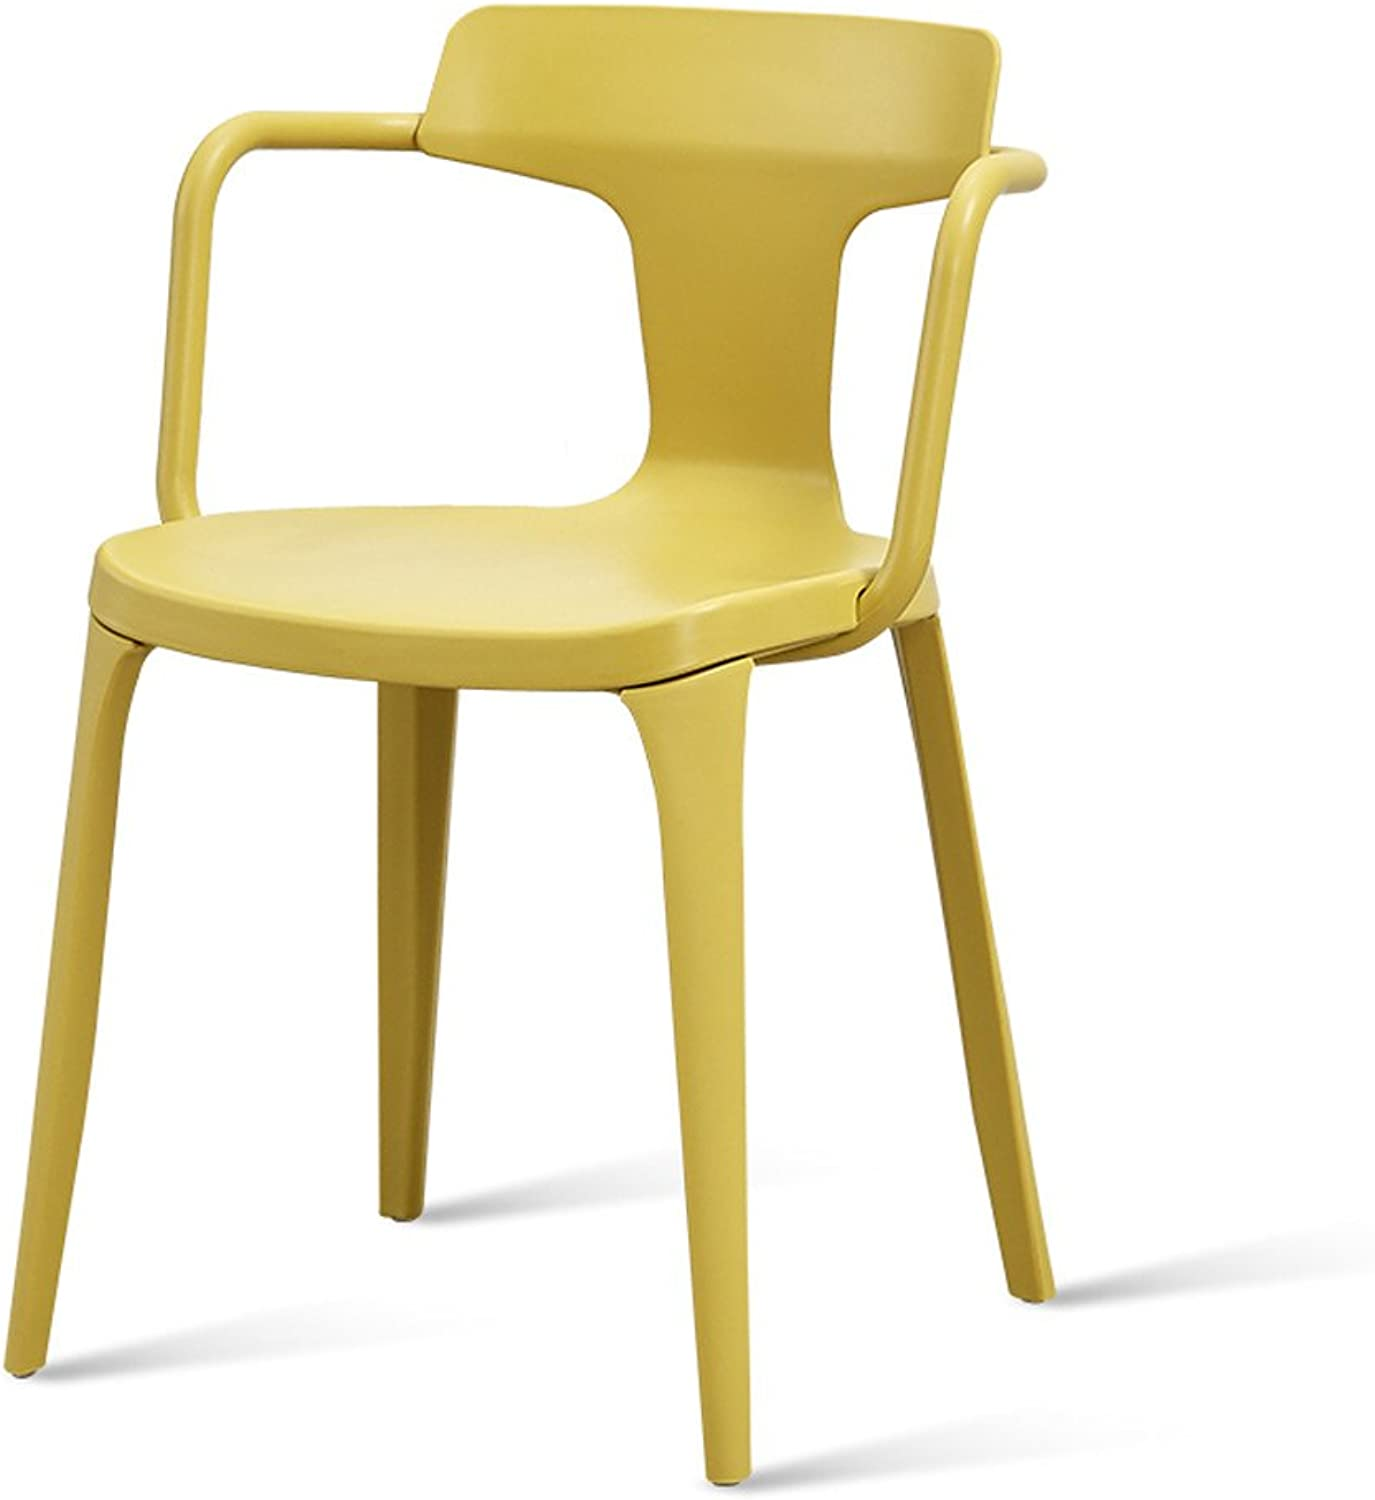 Plastic Stools Nordic Leisure Restaurant Desk Chair Lazy Backrest Chair Yellow Black Brown Dark Red (color   Yellow)